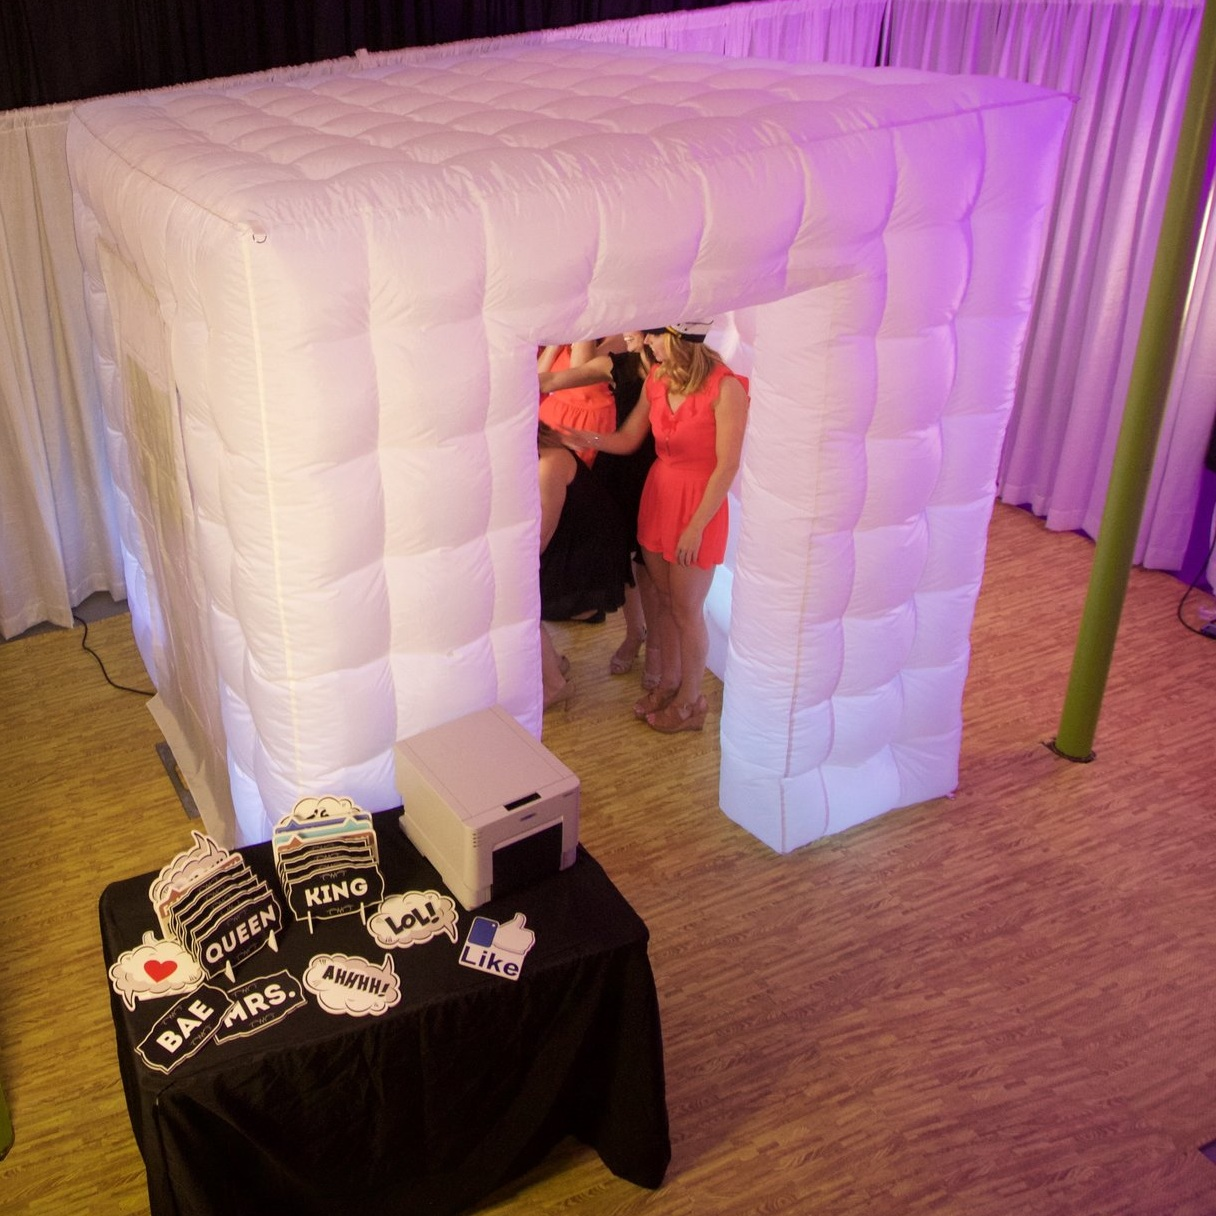 The Inflatable White Booth Enclosure